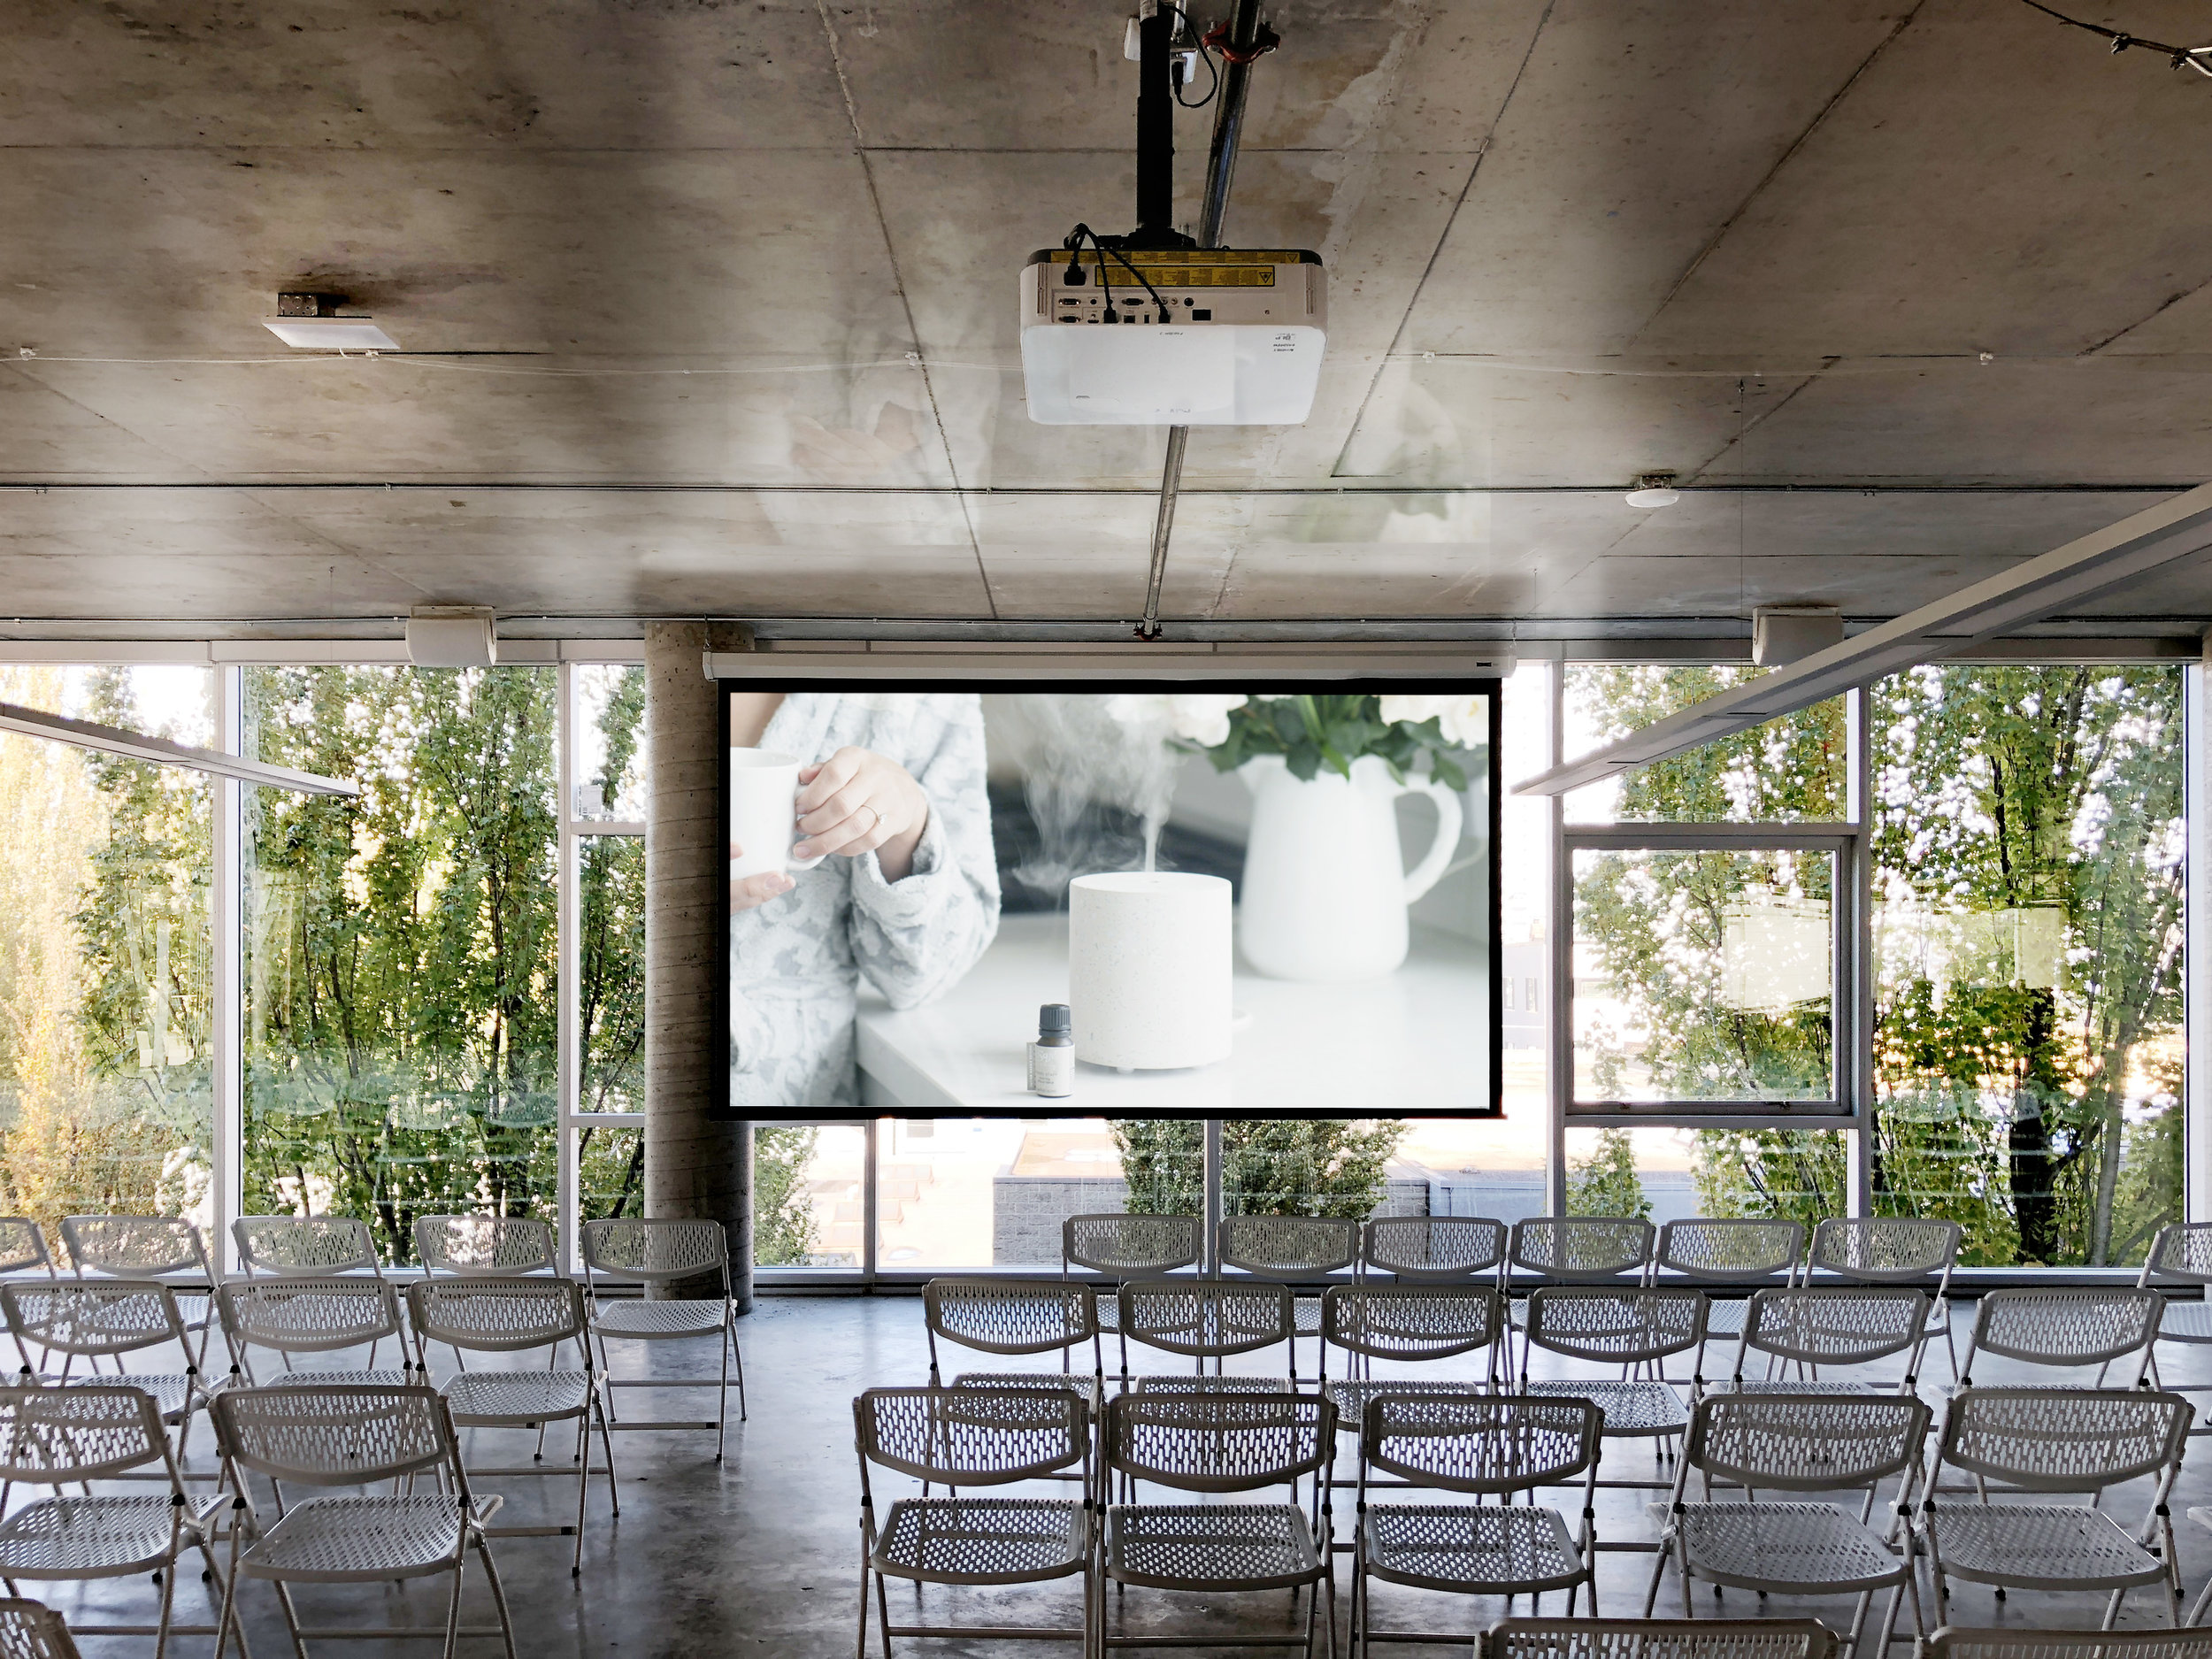 A massive high-gain projection screen with an ambient light reducing surface allows a moderately powerful projector to illuminate an image that can overpower the late day light from in the windows behind it.